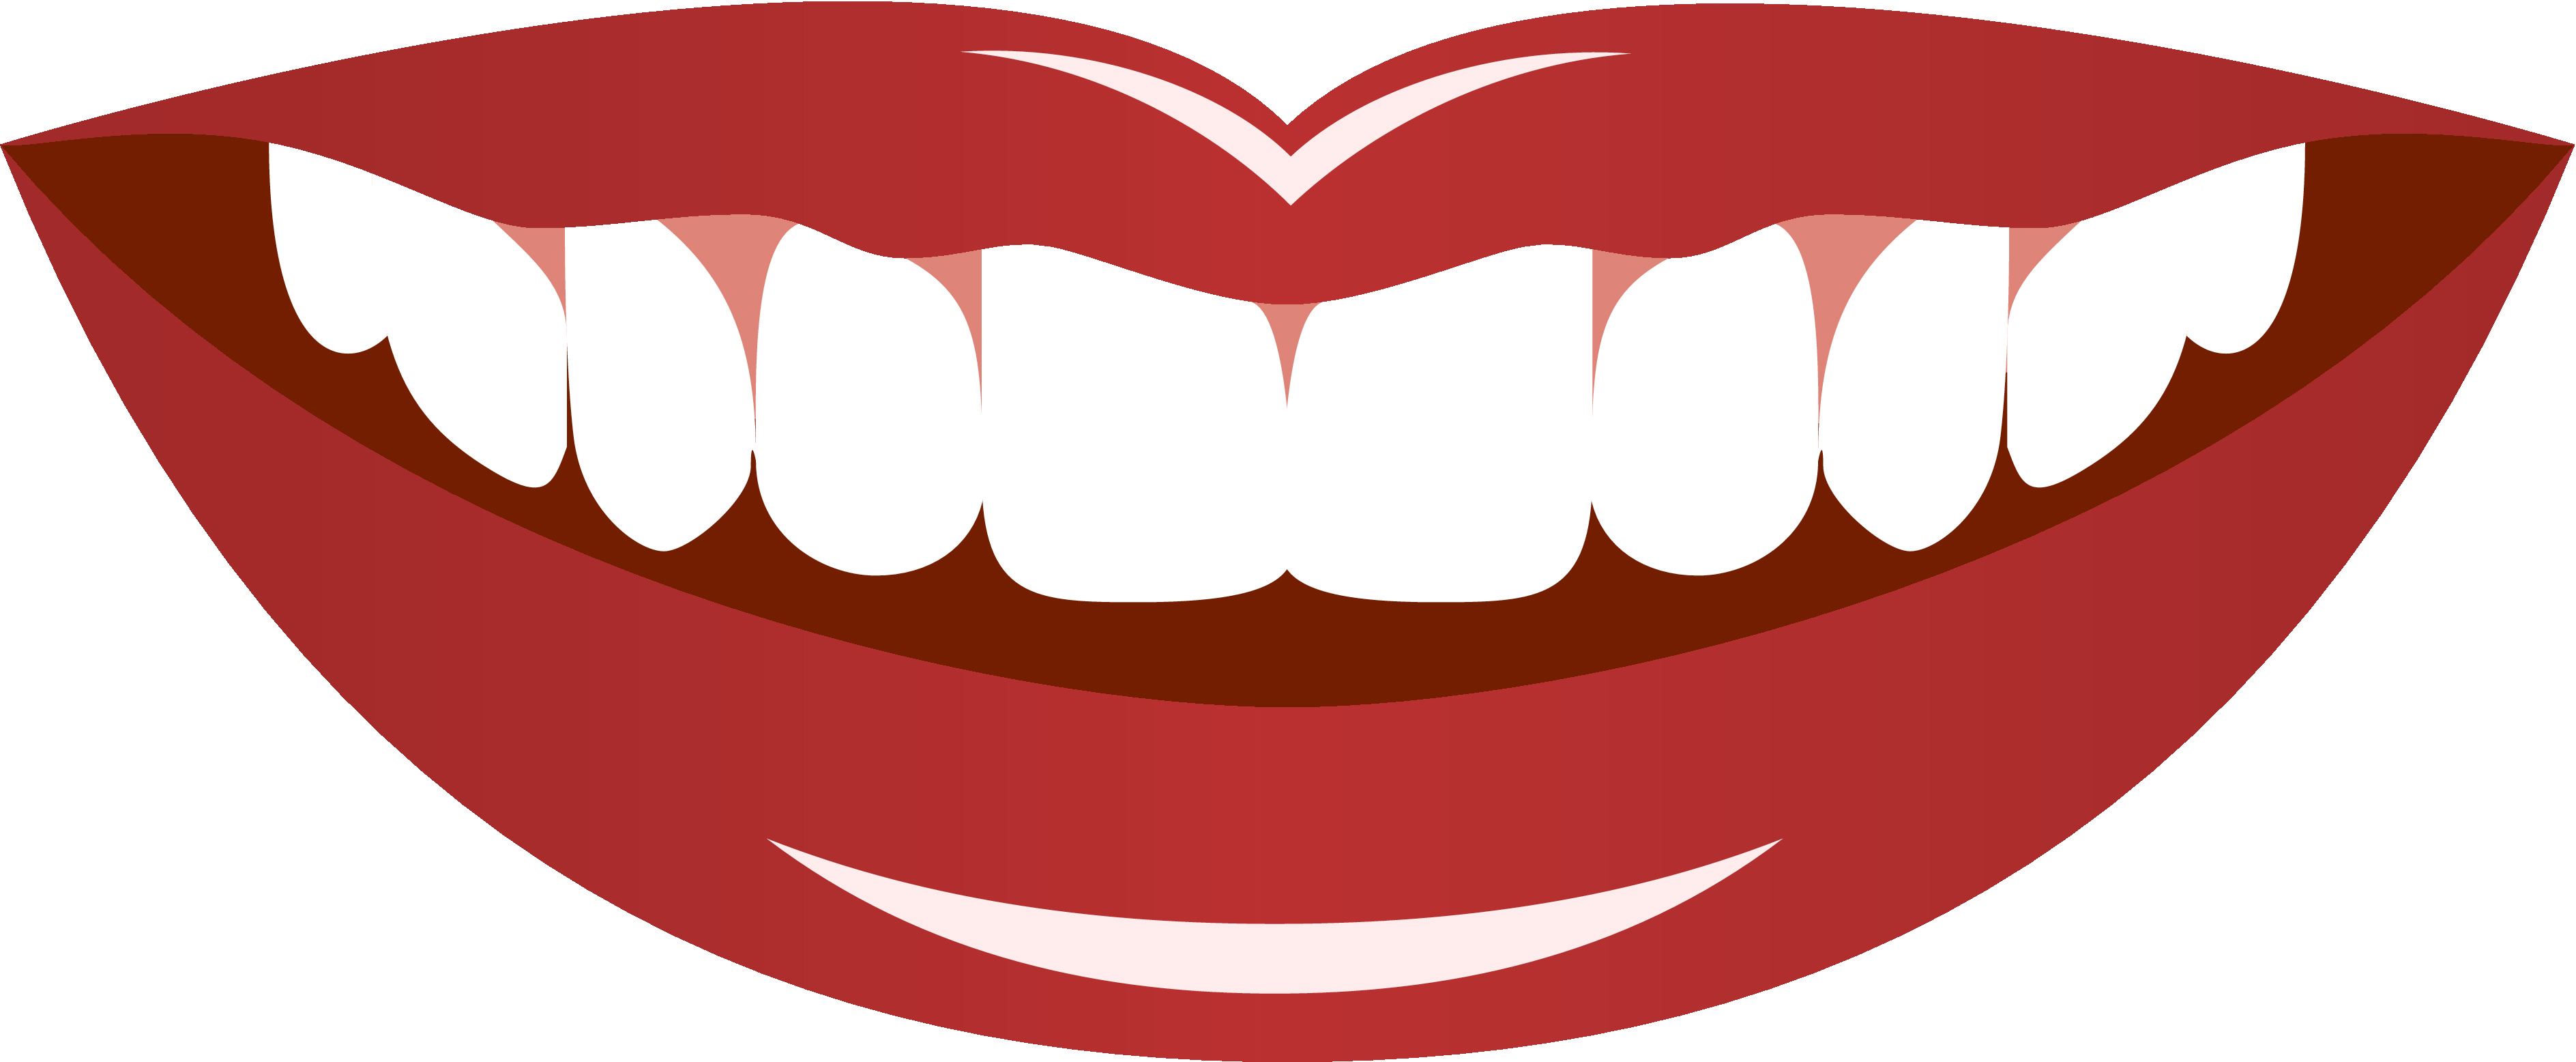 Mouth Images